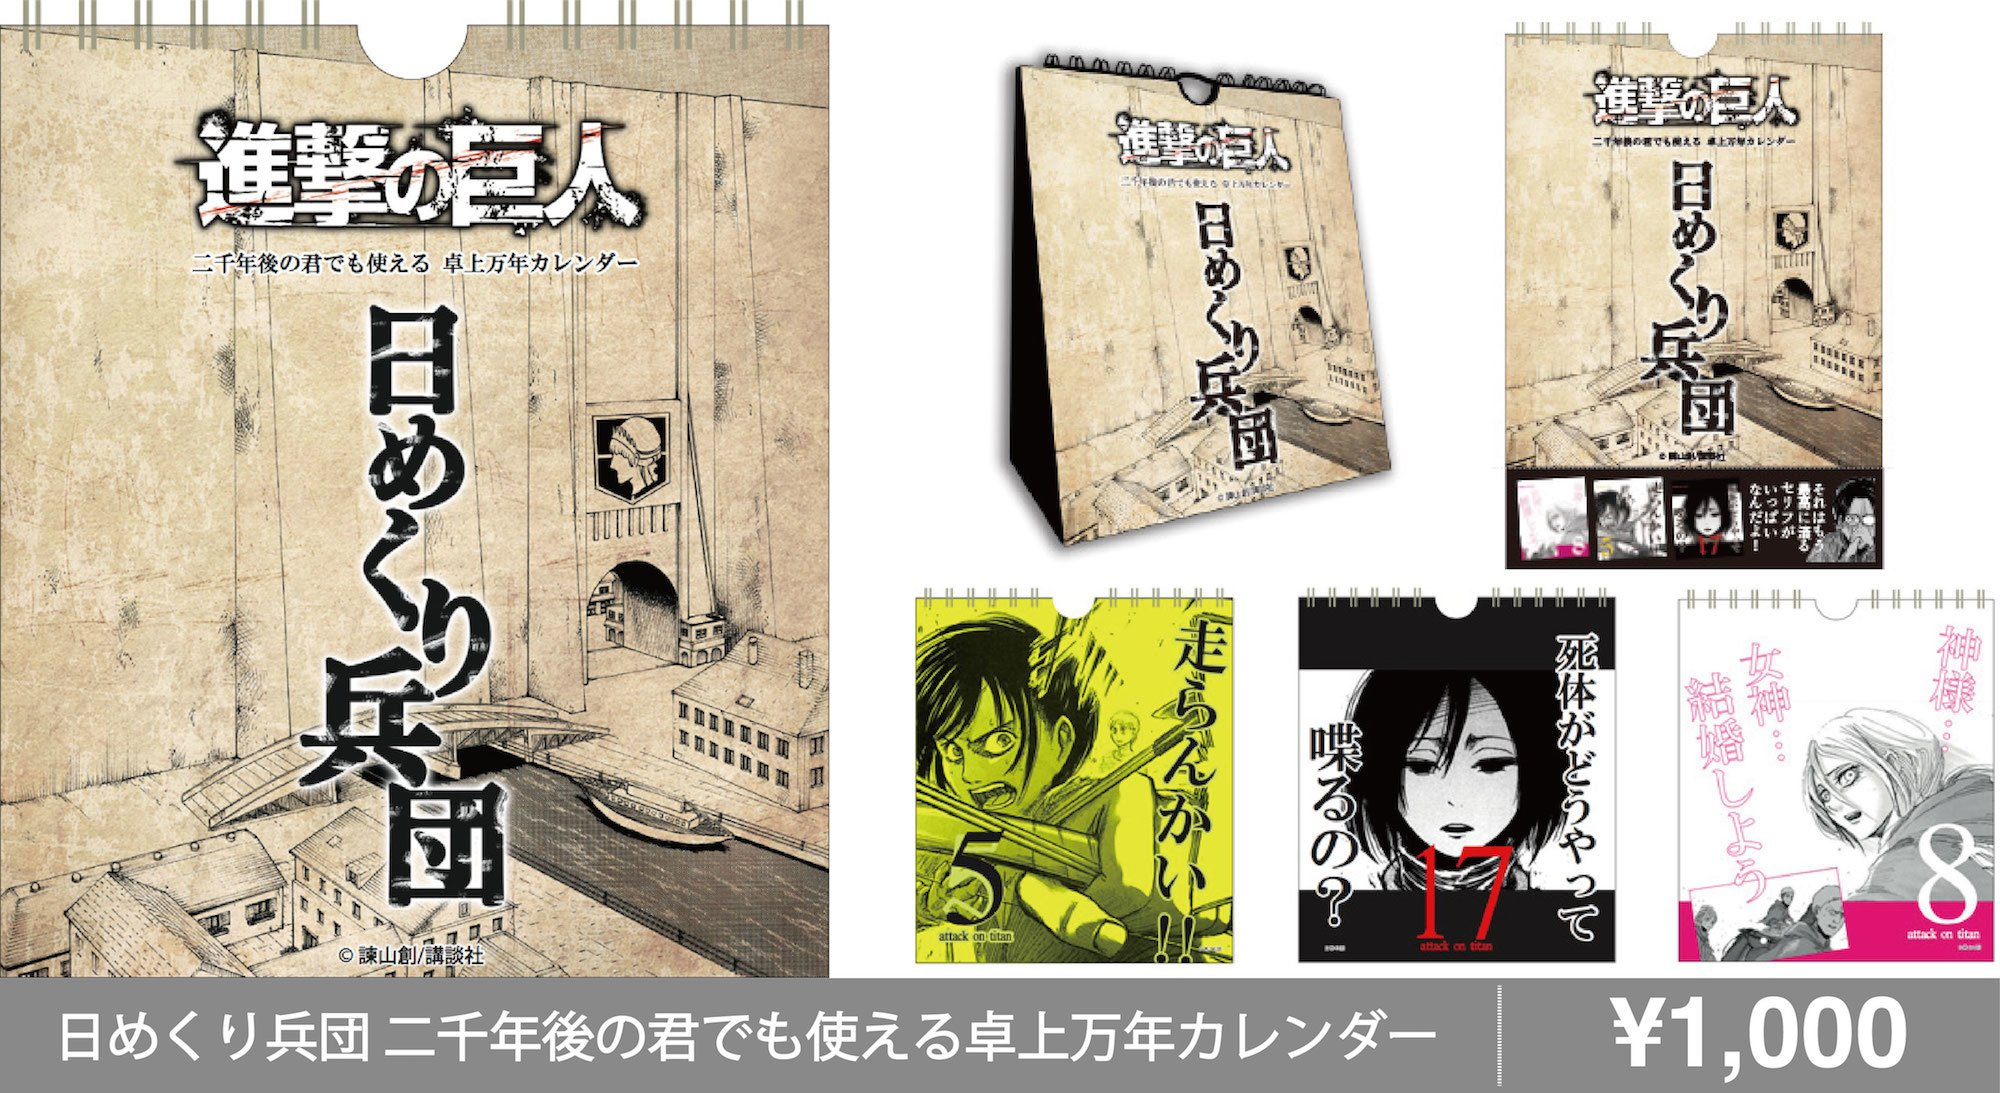 Attack on Titan Flip Calendar:  A Desktop Calendar You Can Use Even 2,000 Years from Now | Kyomaf Price: 1,000 yen